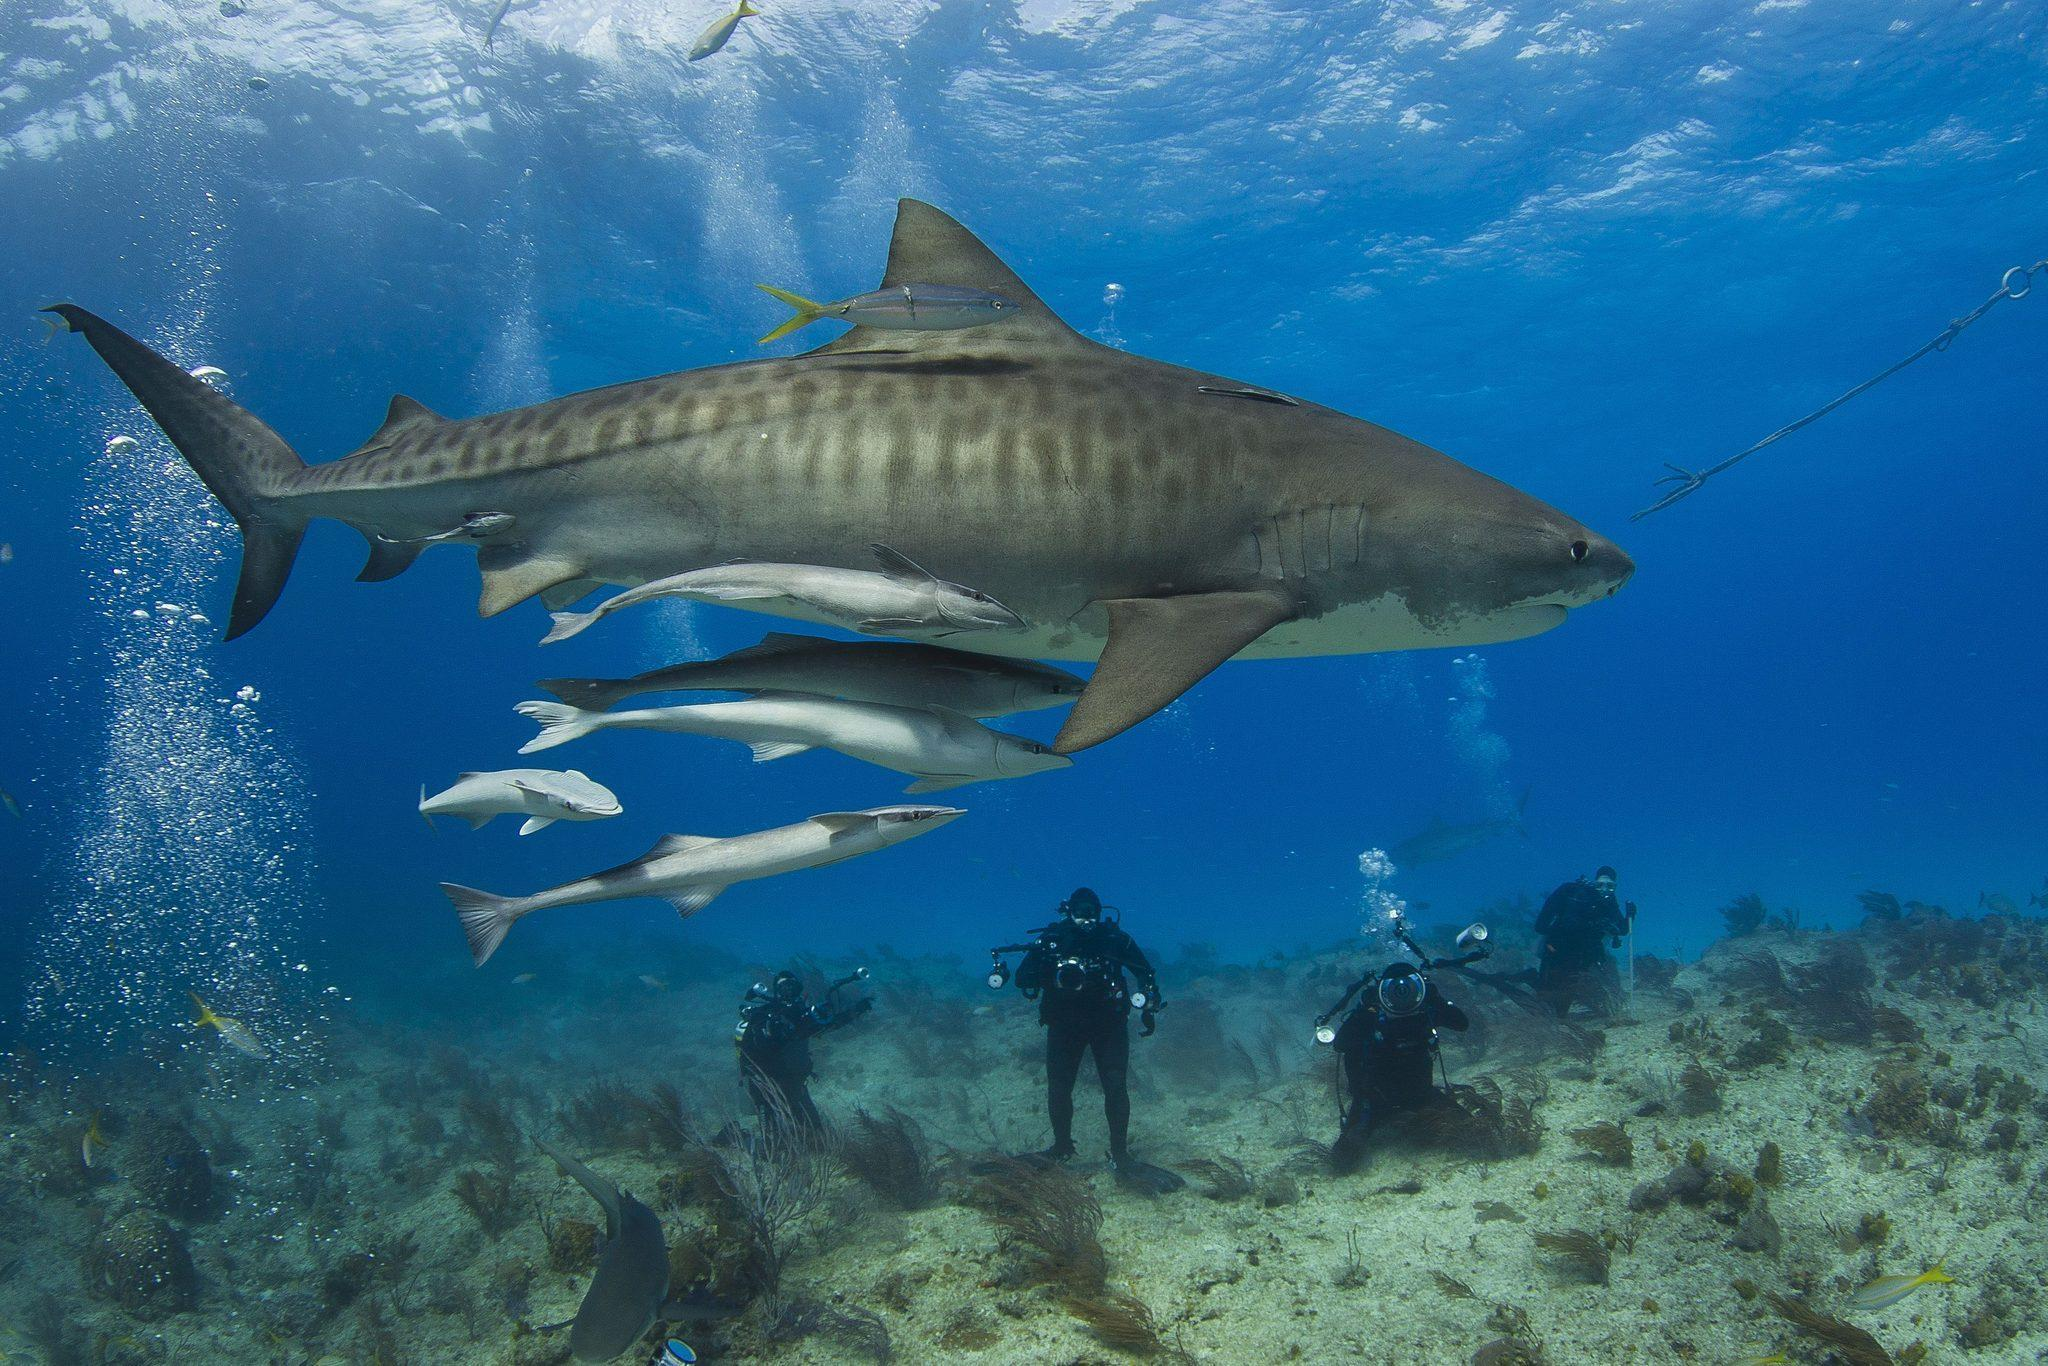 Sharks that can attack - Daily Press